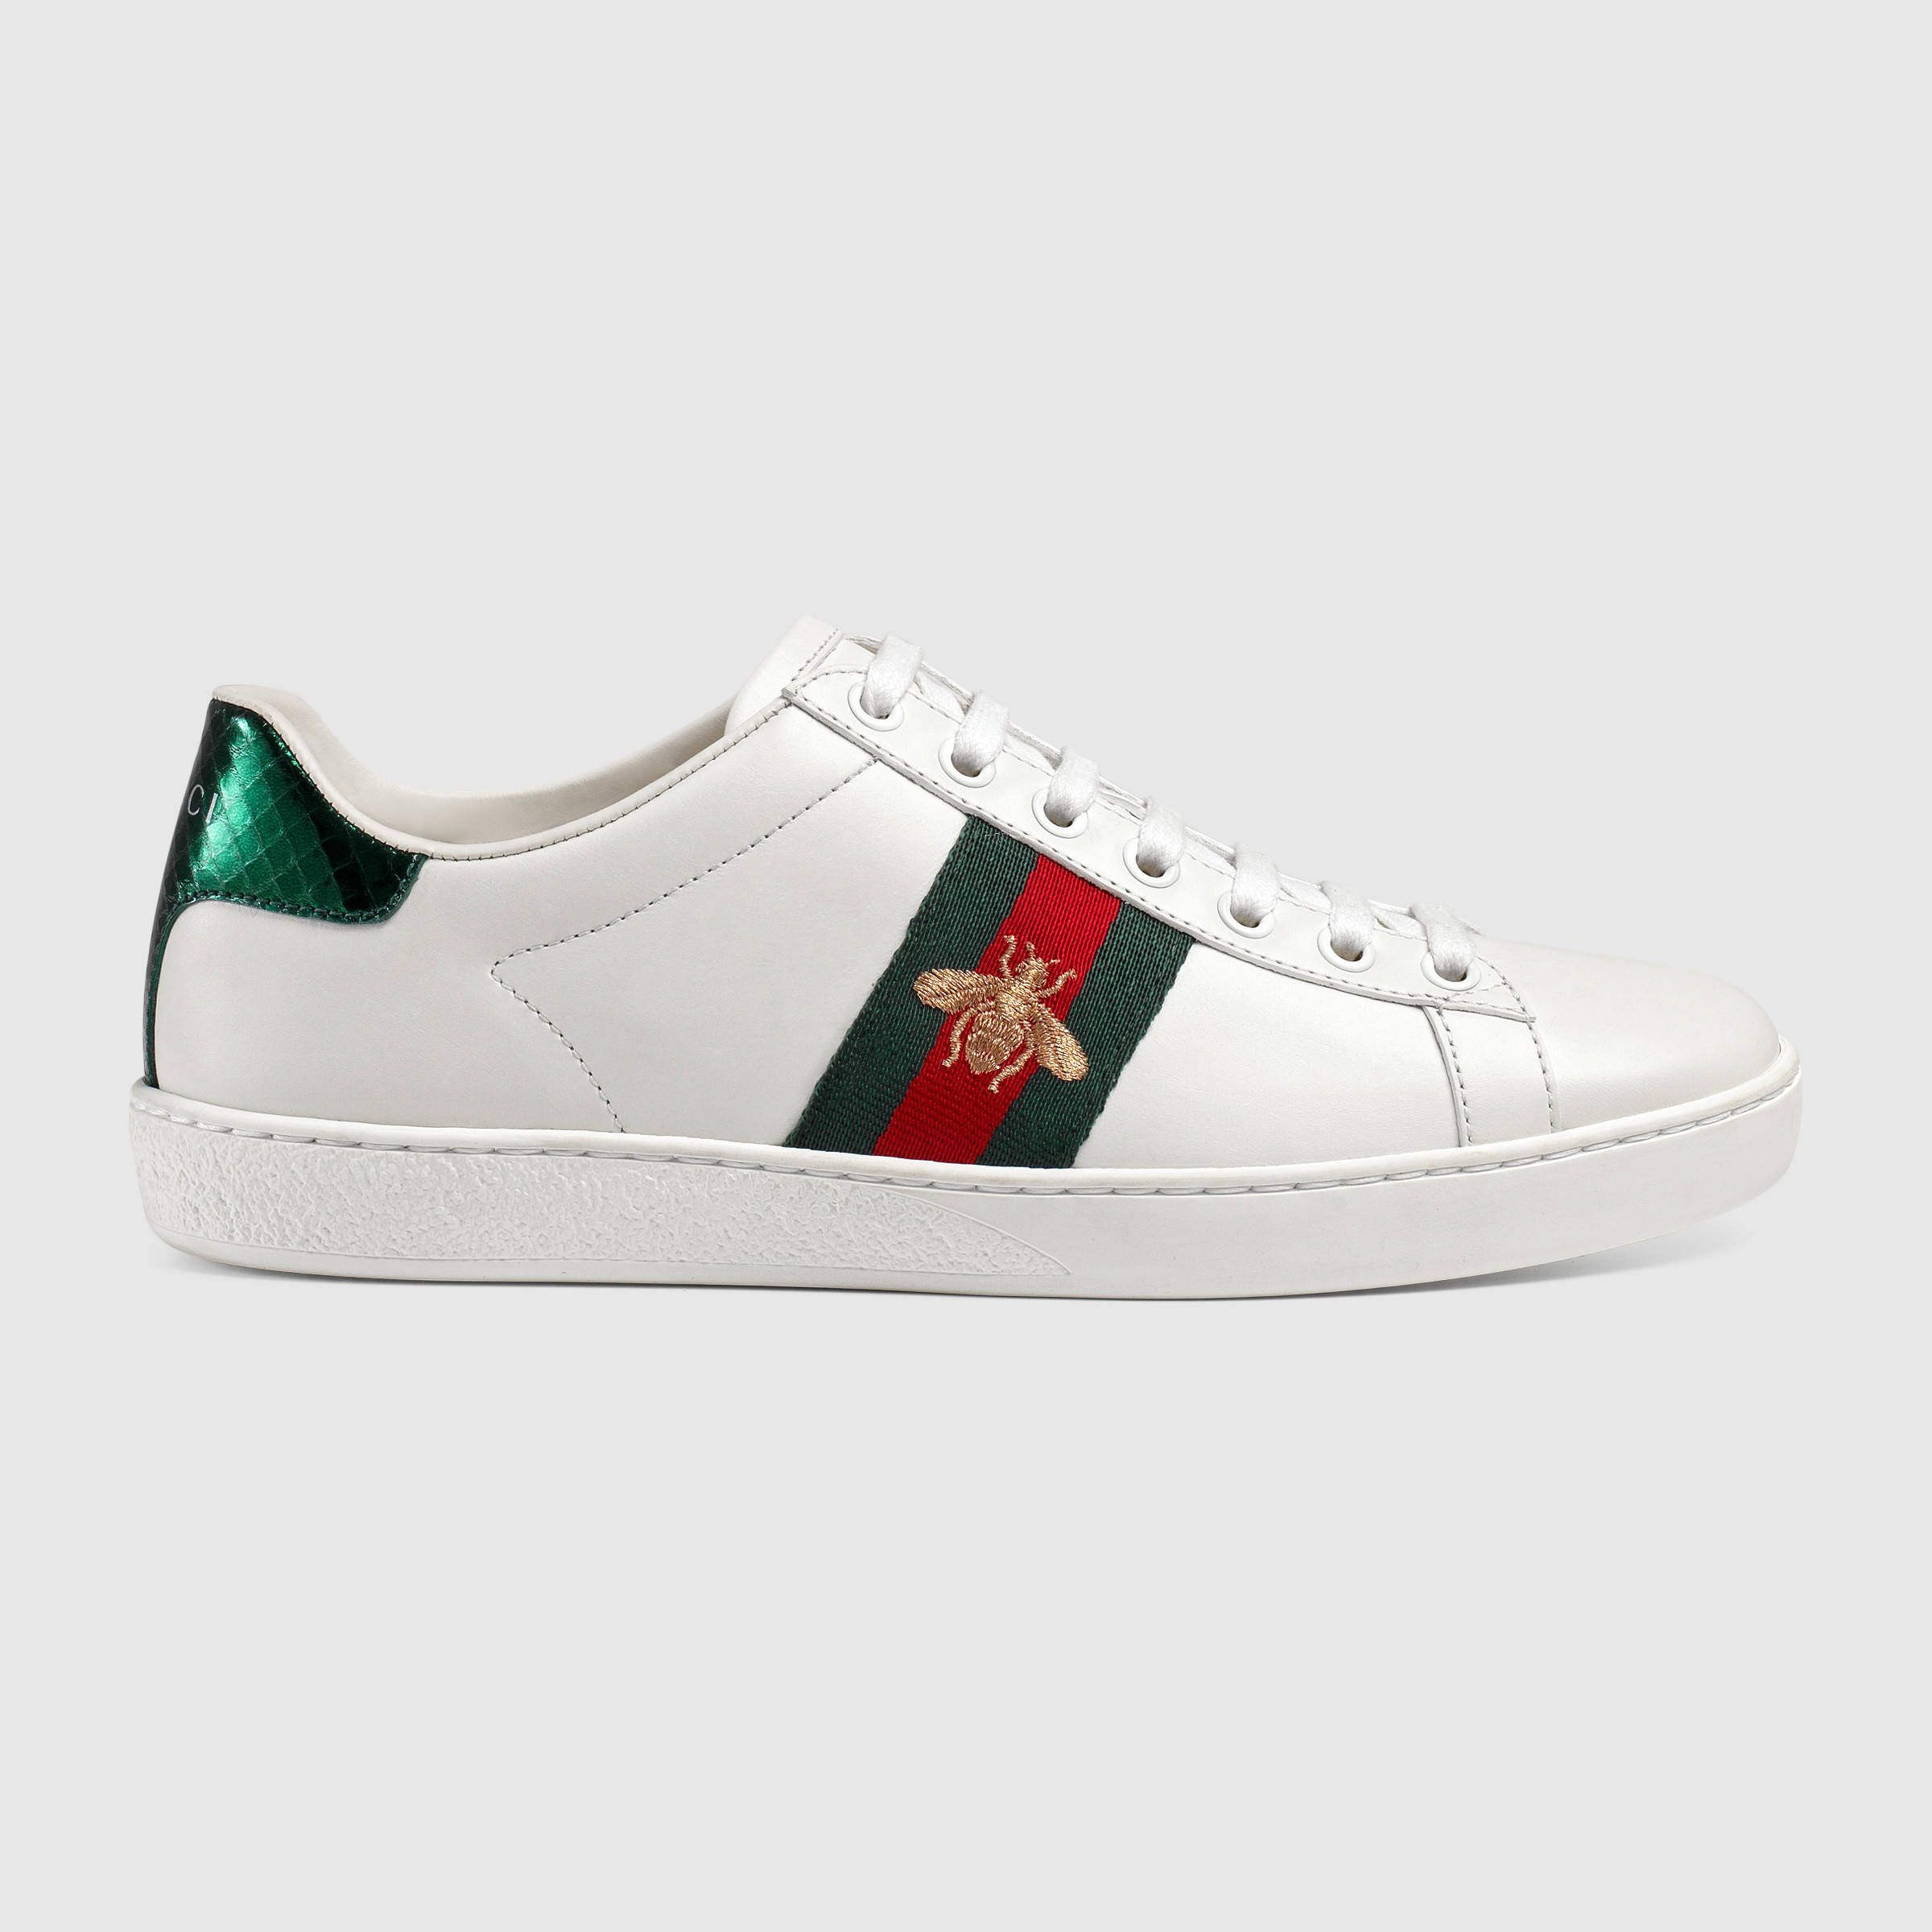 c219e5a26 Ace embroidered sneaker | Casual Days | Gucci sneakers, Shoes ...